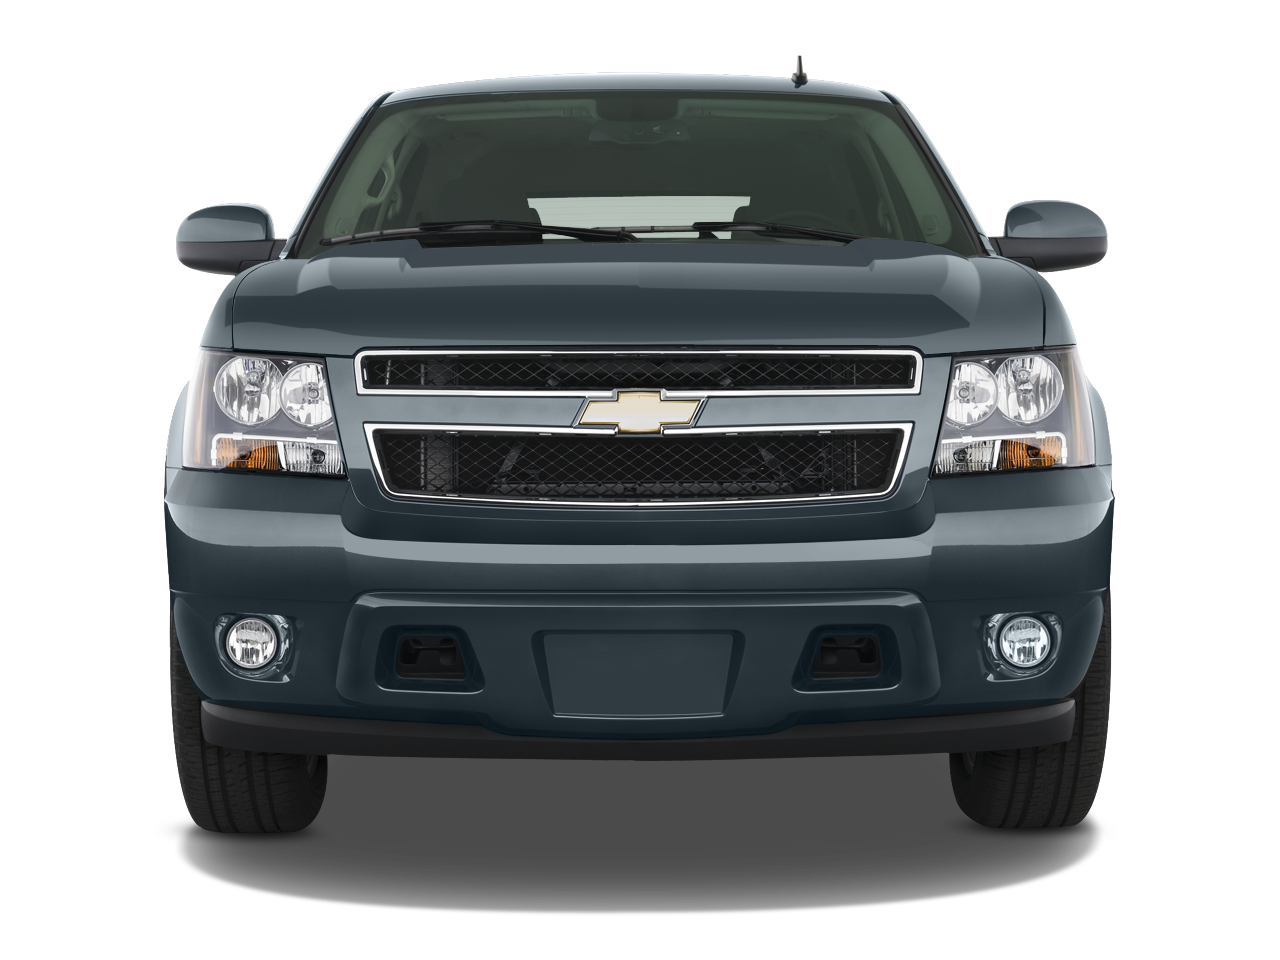 2008 chevytahoe hybrid chevy hybrid suv review. Black Bedroom Furniture Sets. Home Design Ideas